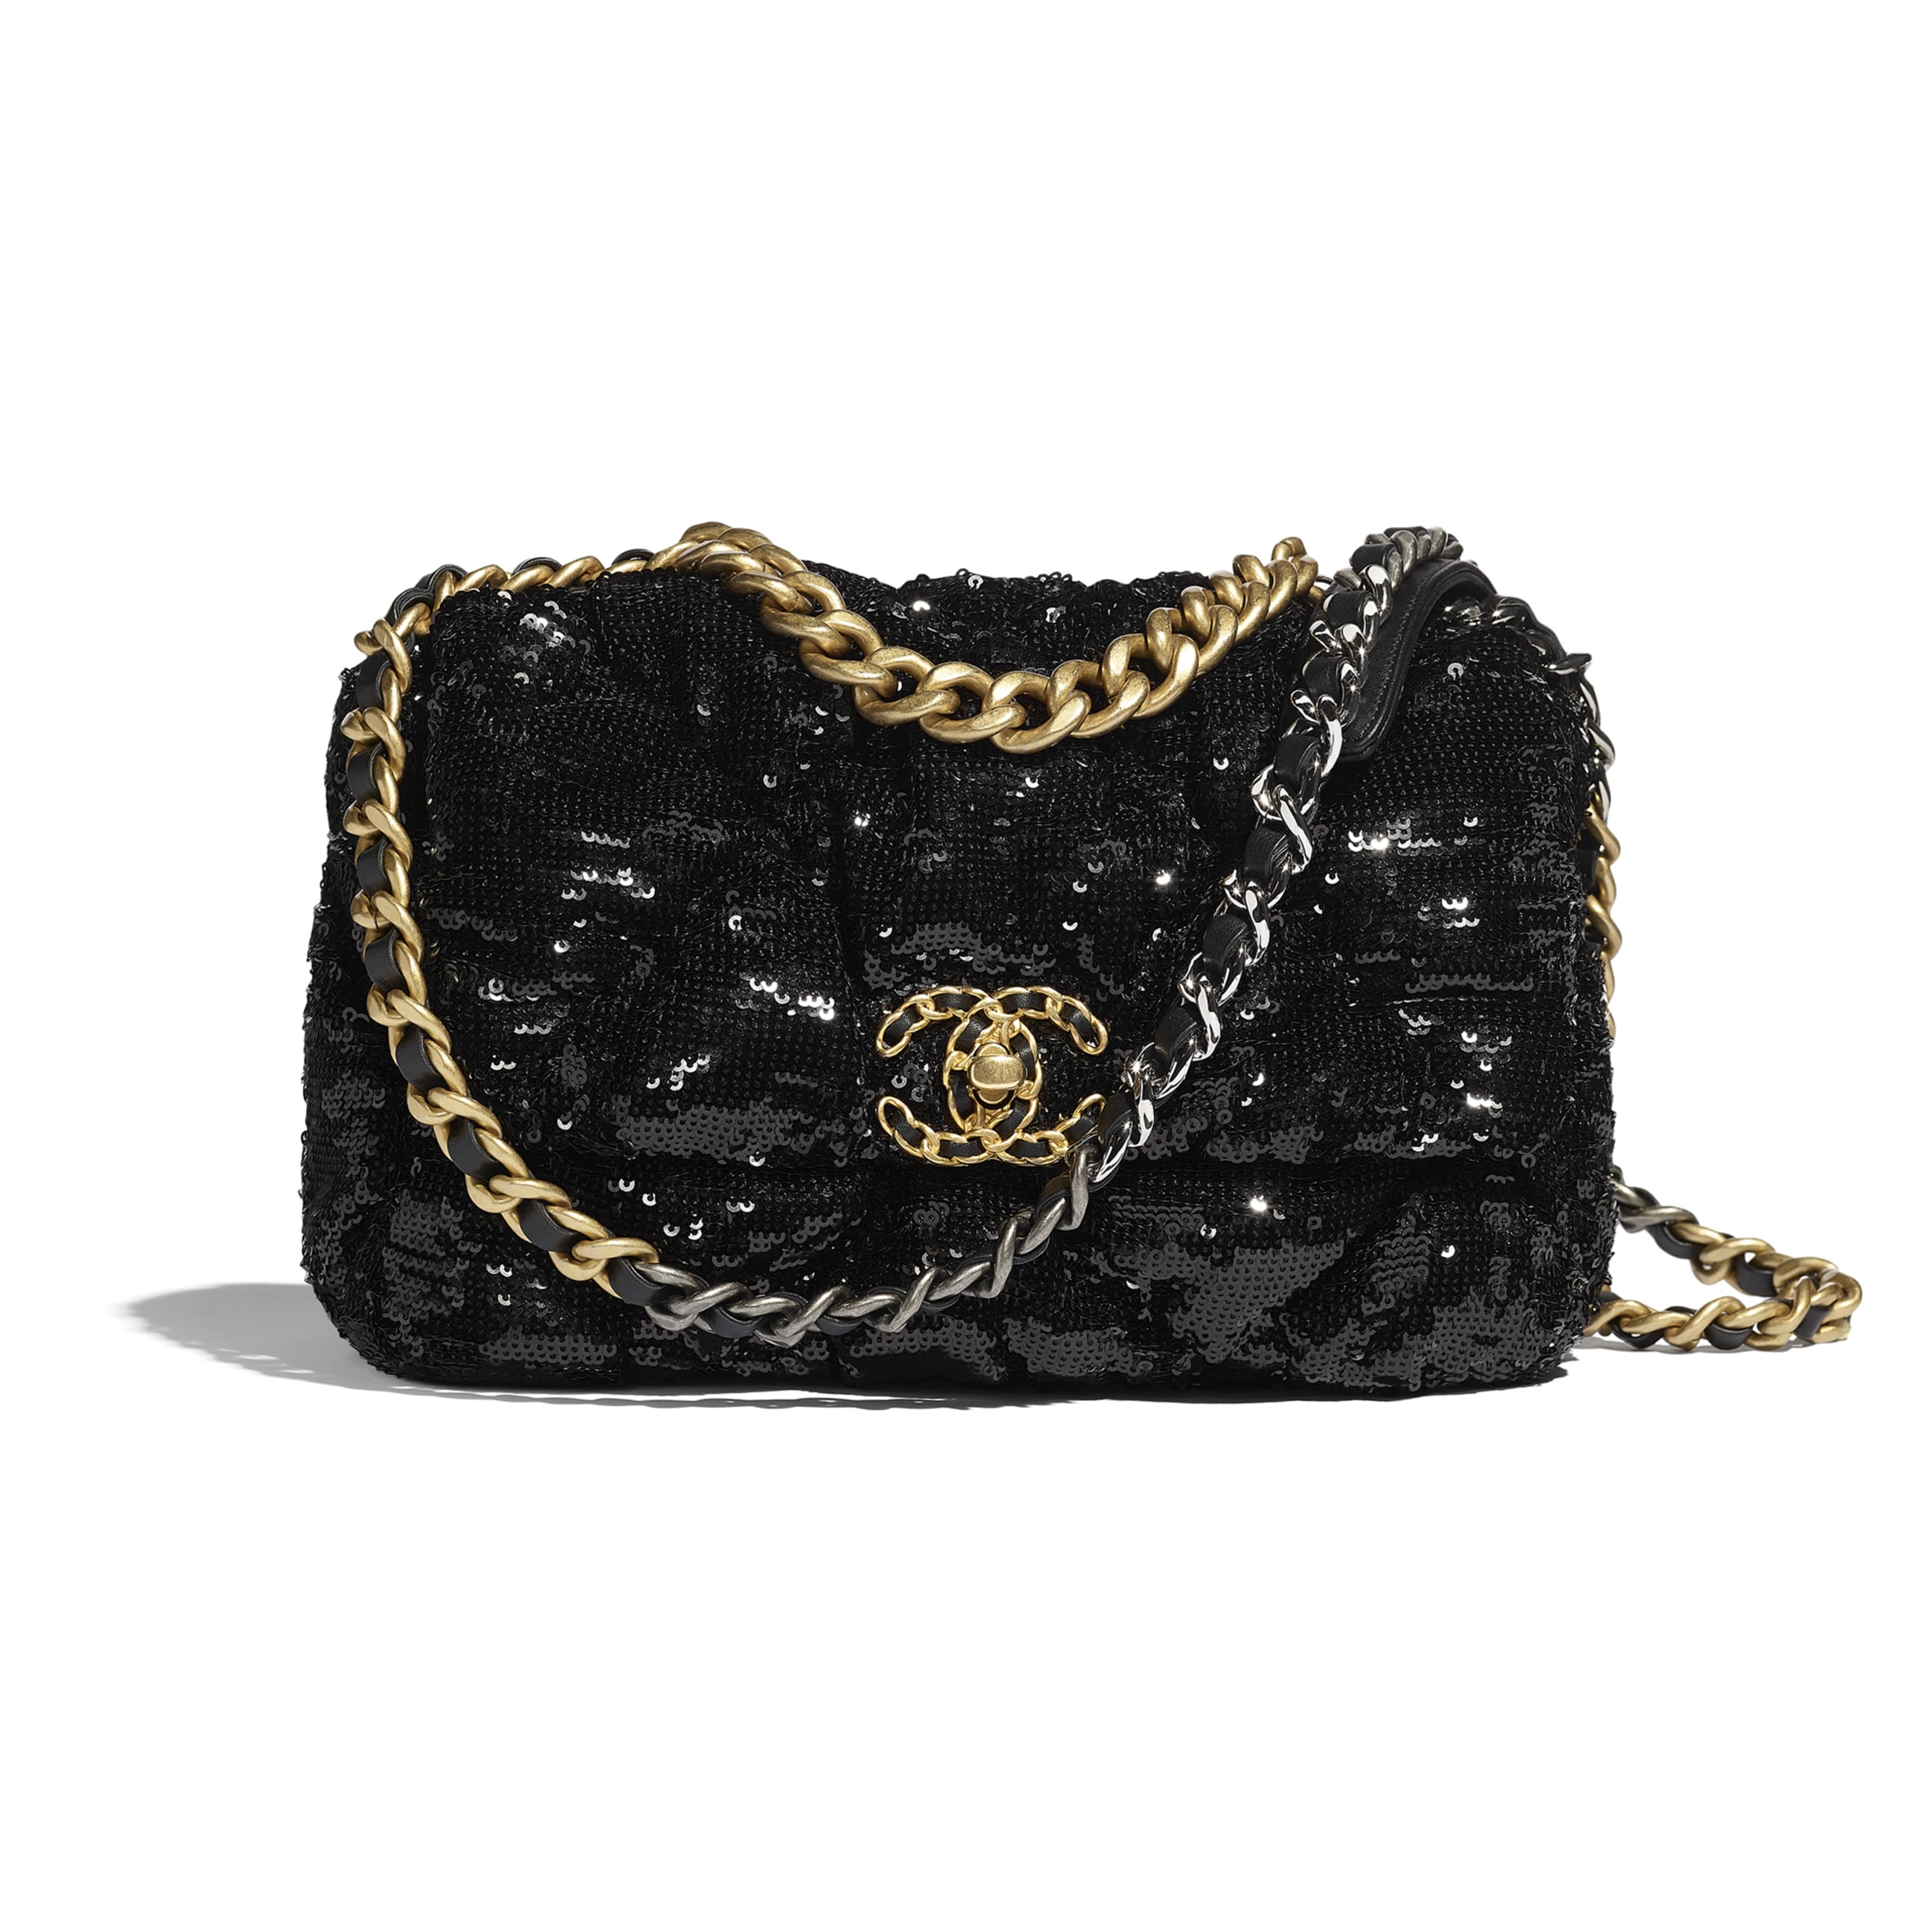 CHANEL 19 Flap Bag - Black - Sequins, Gold-Tone, Siver-Tone & Ruthenium-Finish Metal - CHANEL - Default view - see standard sized version